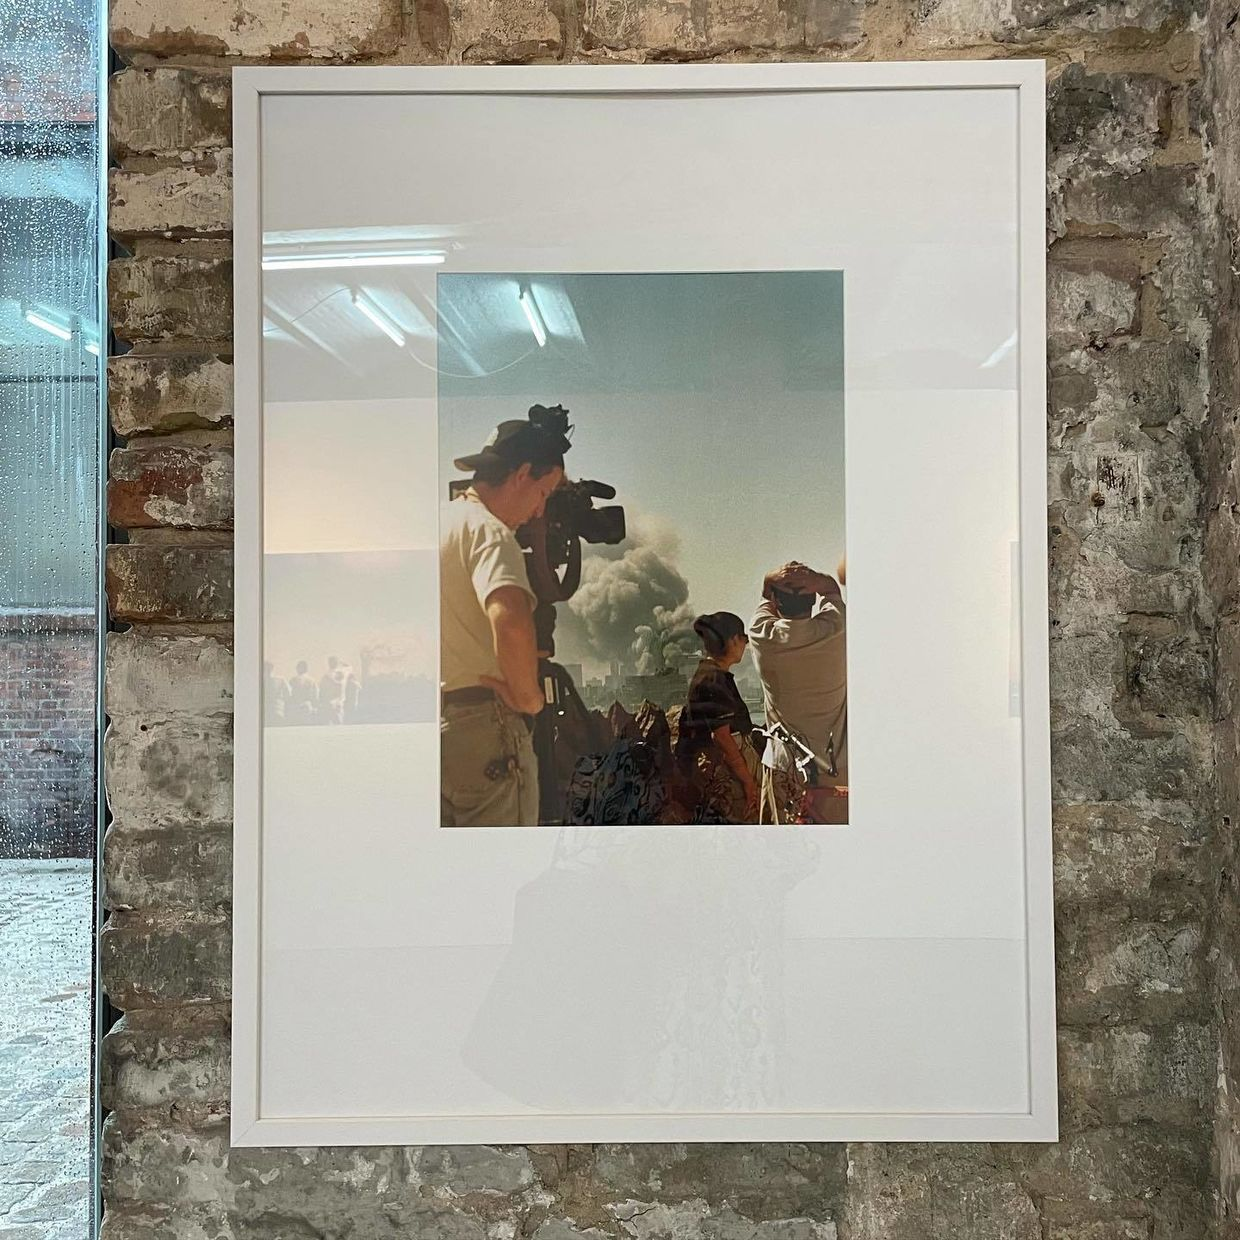 '20 Years After - an Alternate View' by TIM PETERSEN - Installation View